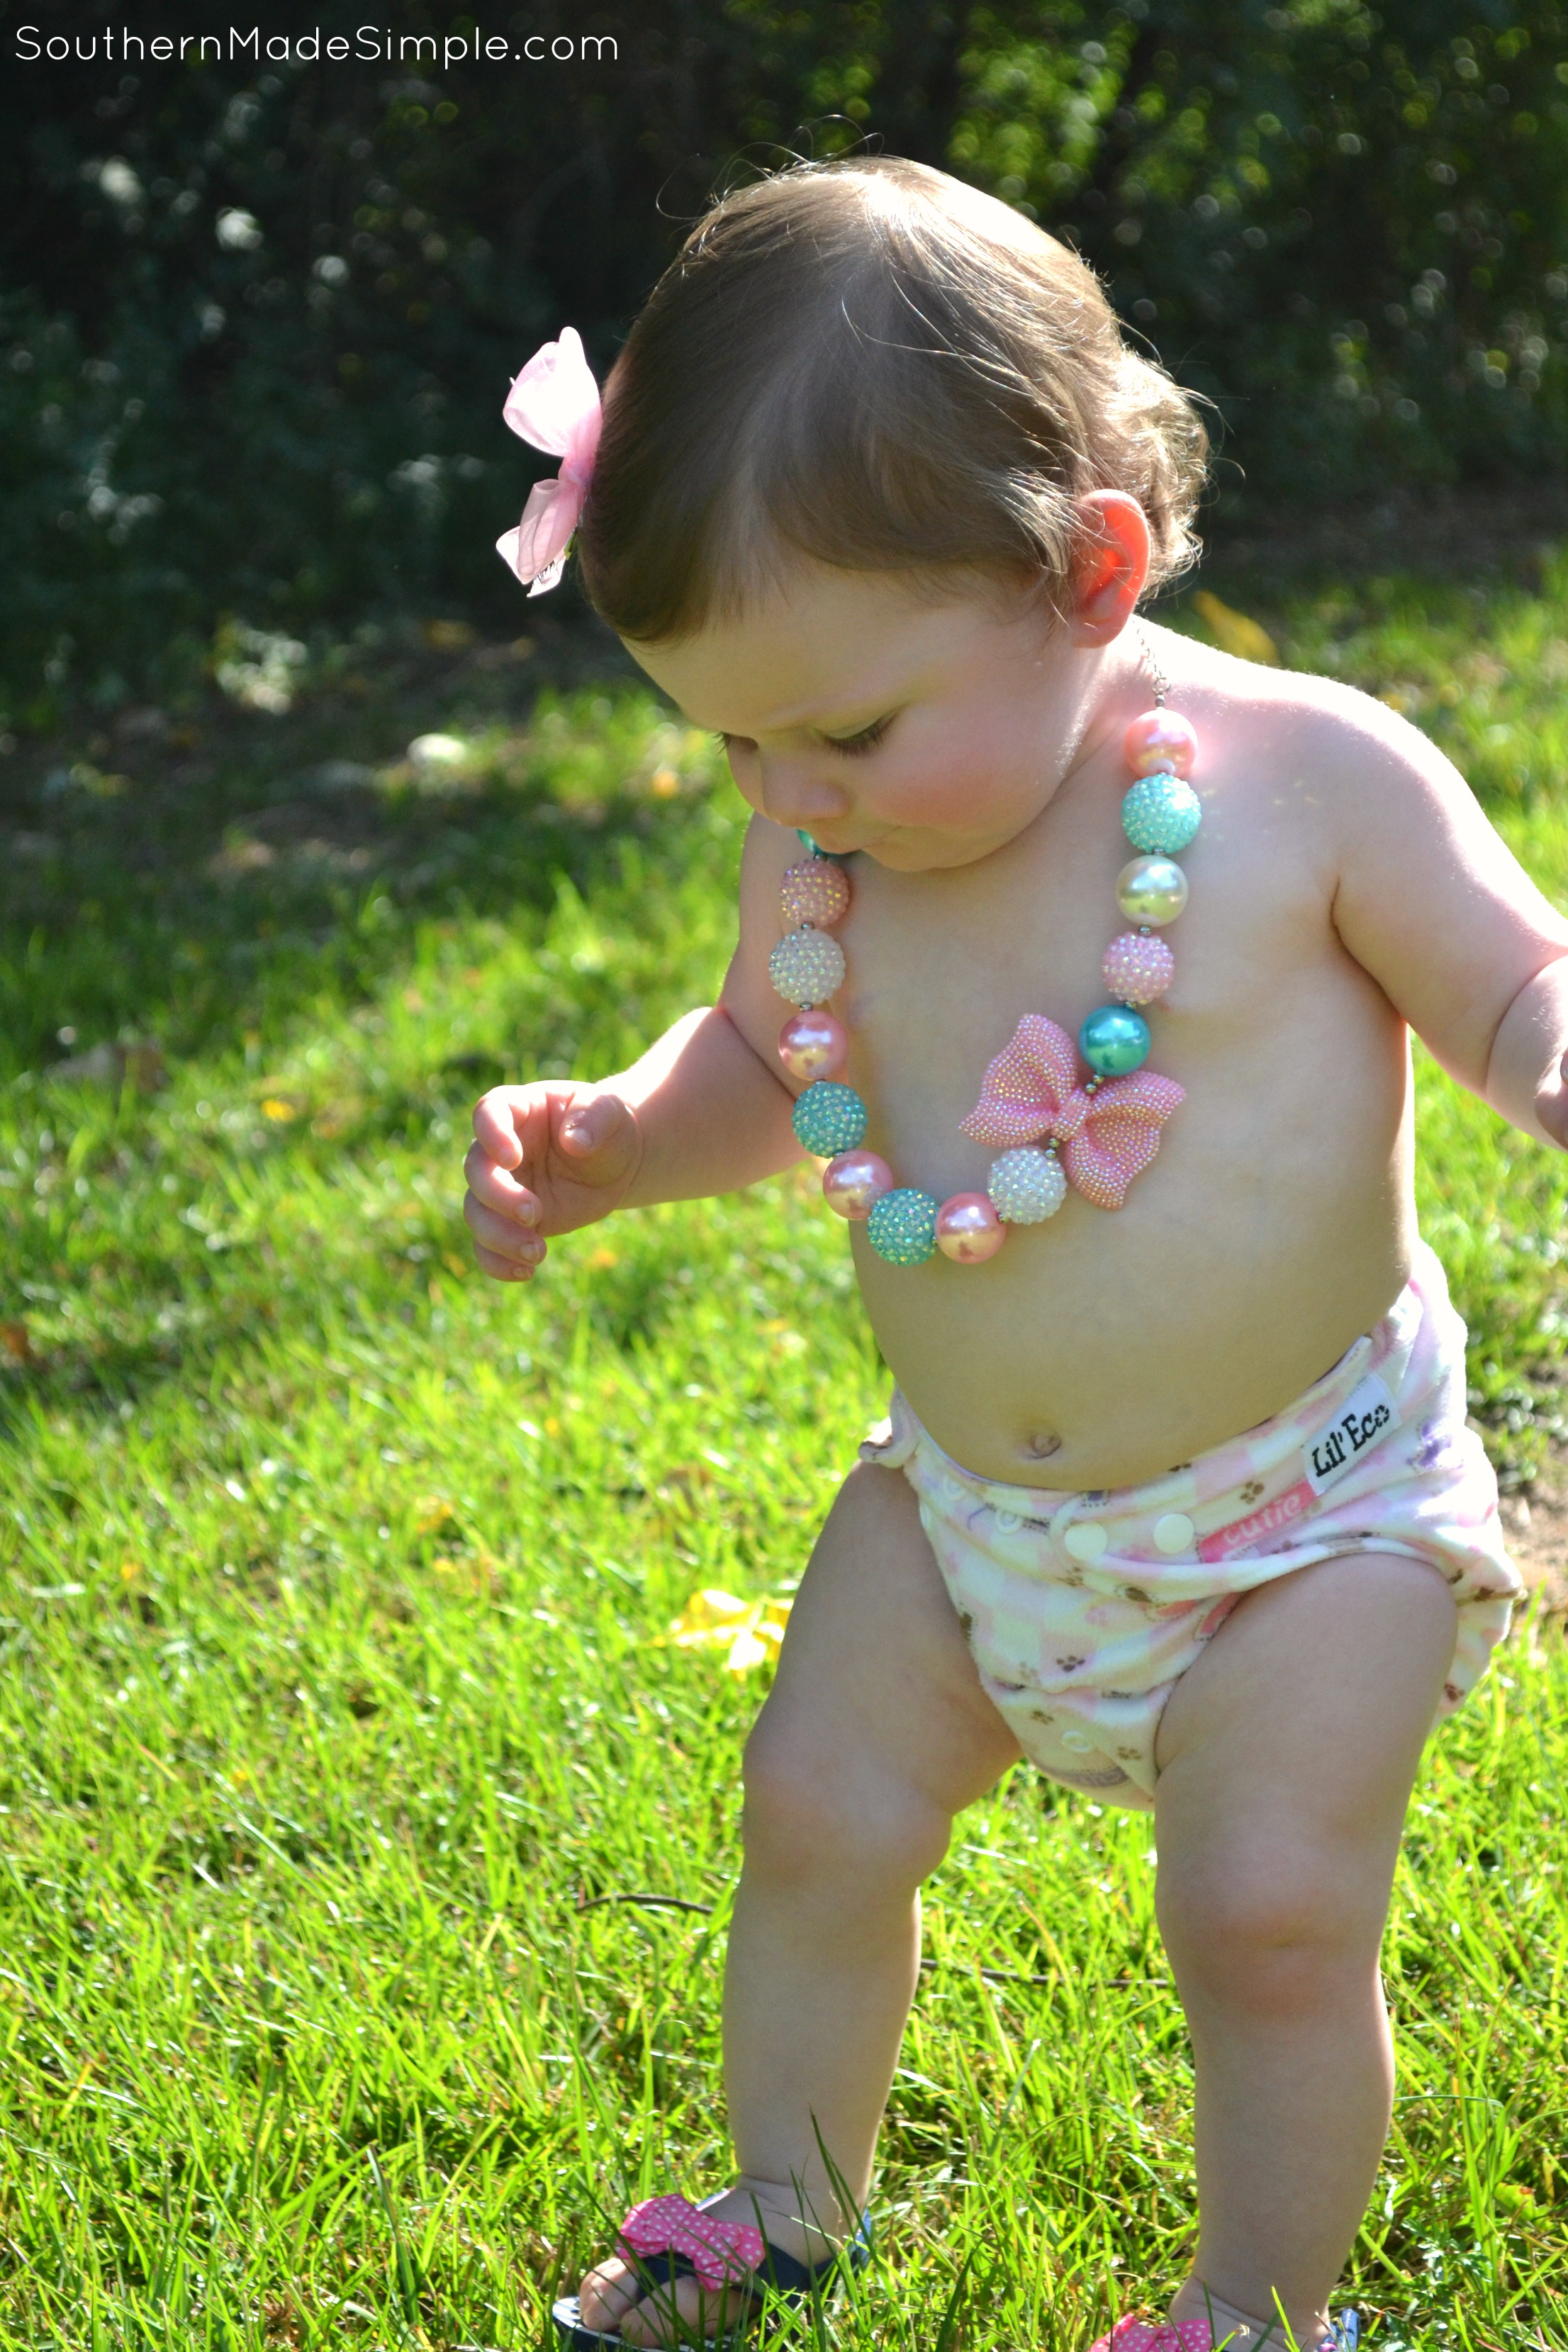 Sweet Summertime Cloth Diaper Giveaway Ends 7/31